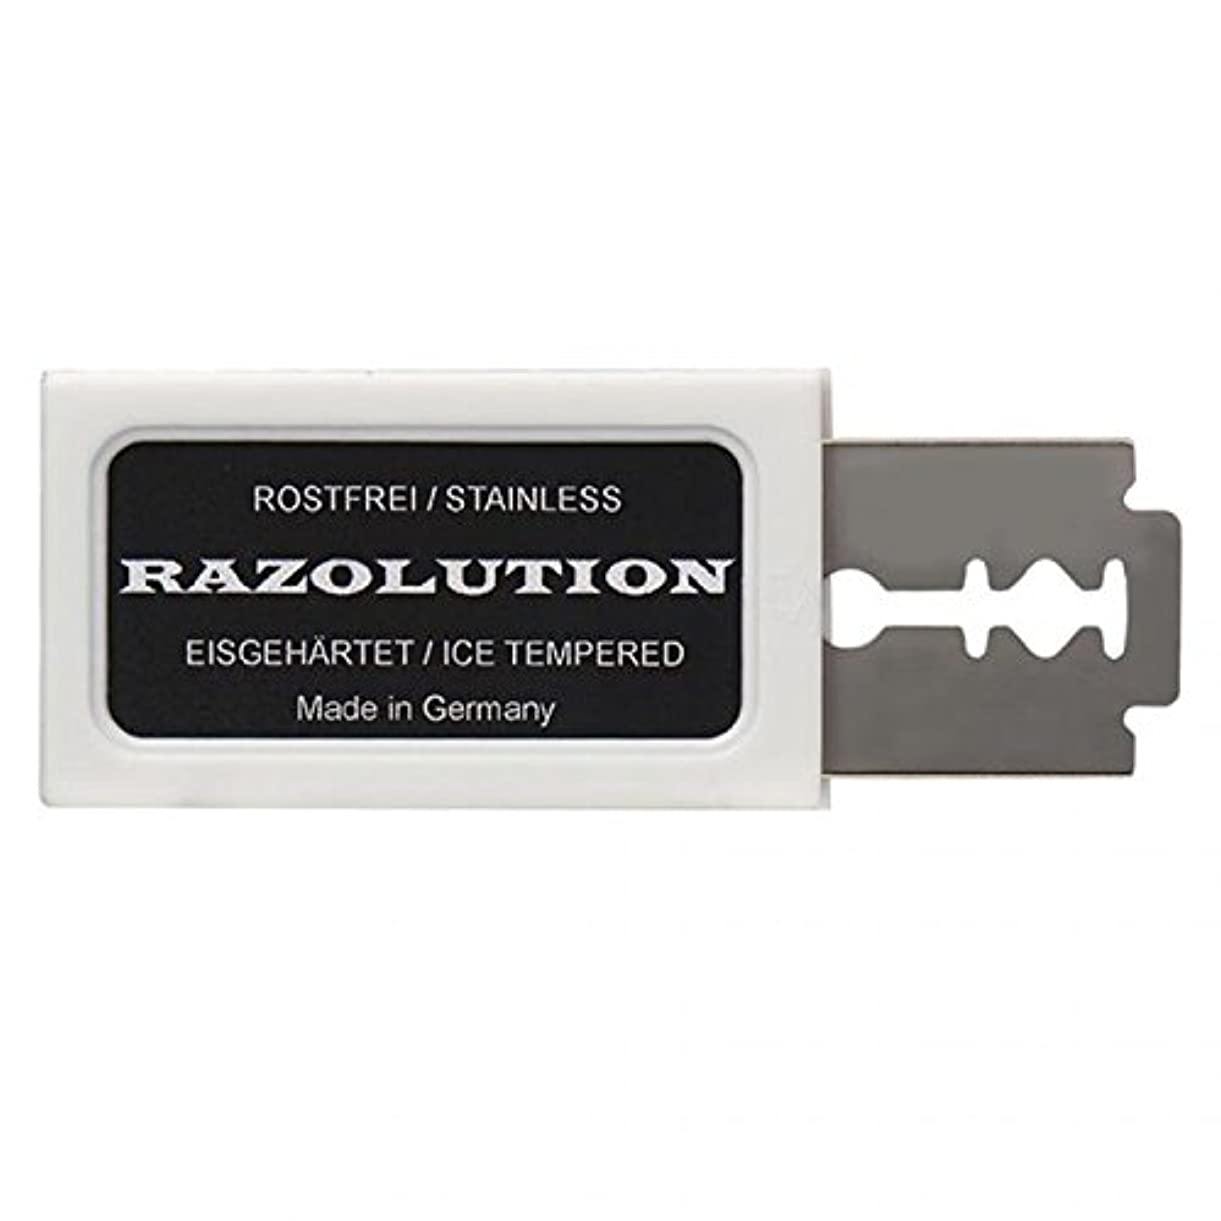 腸商業のブランクRAZOLUTION Razor blades, 10 pieces, Made in Germany